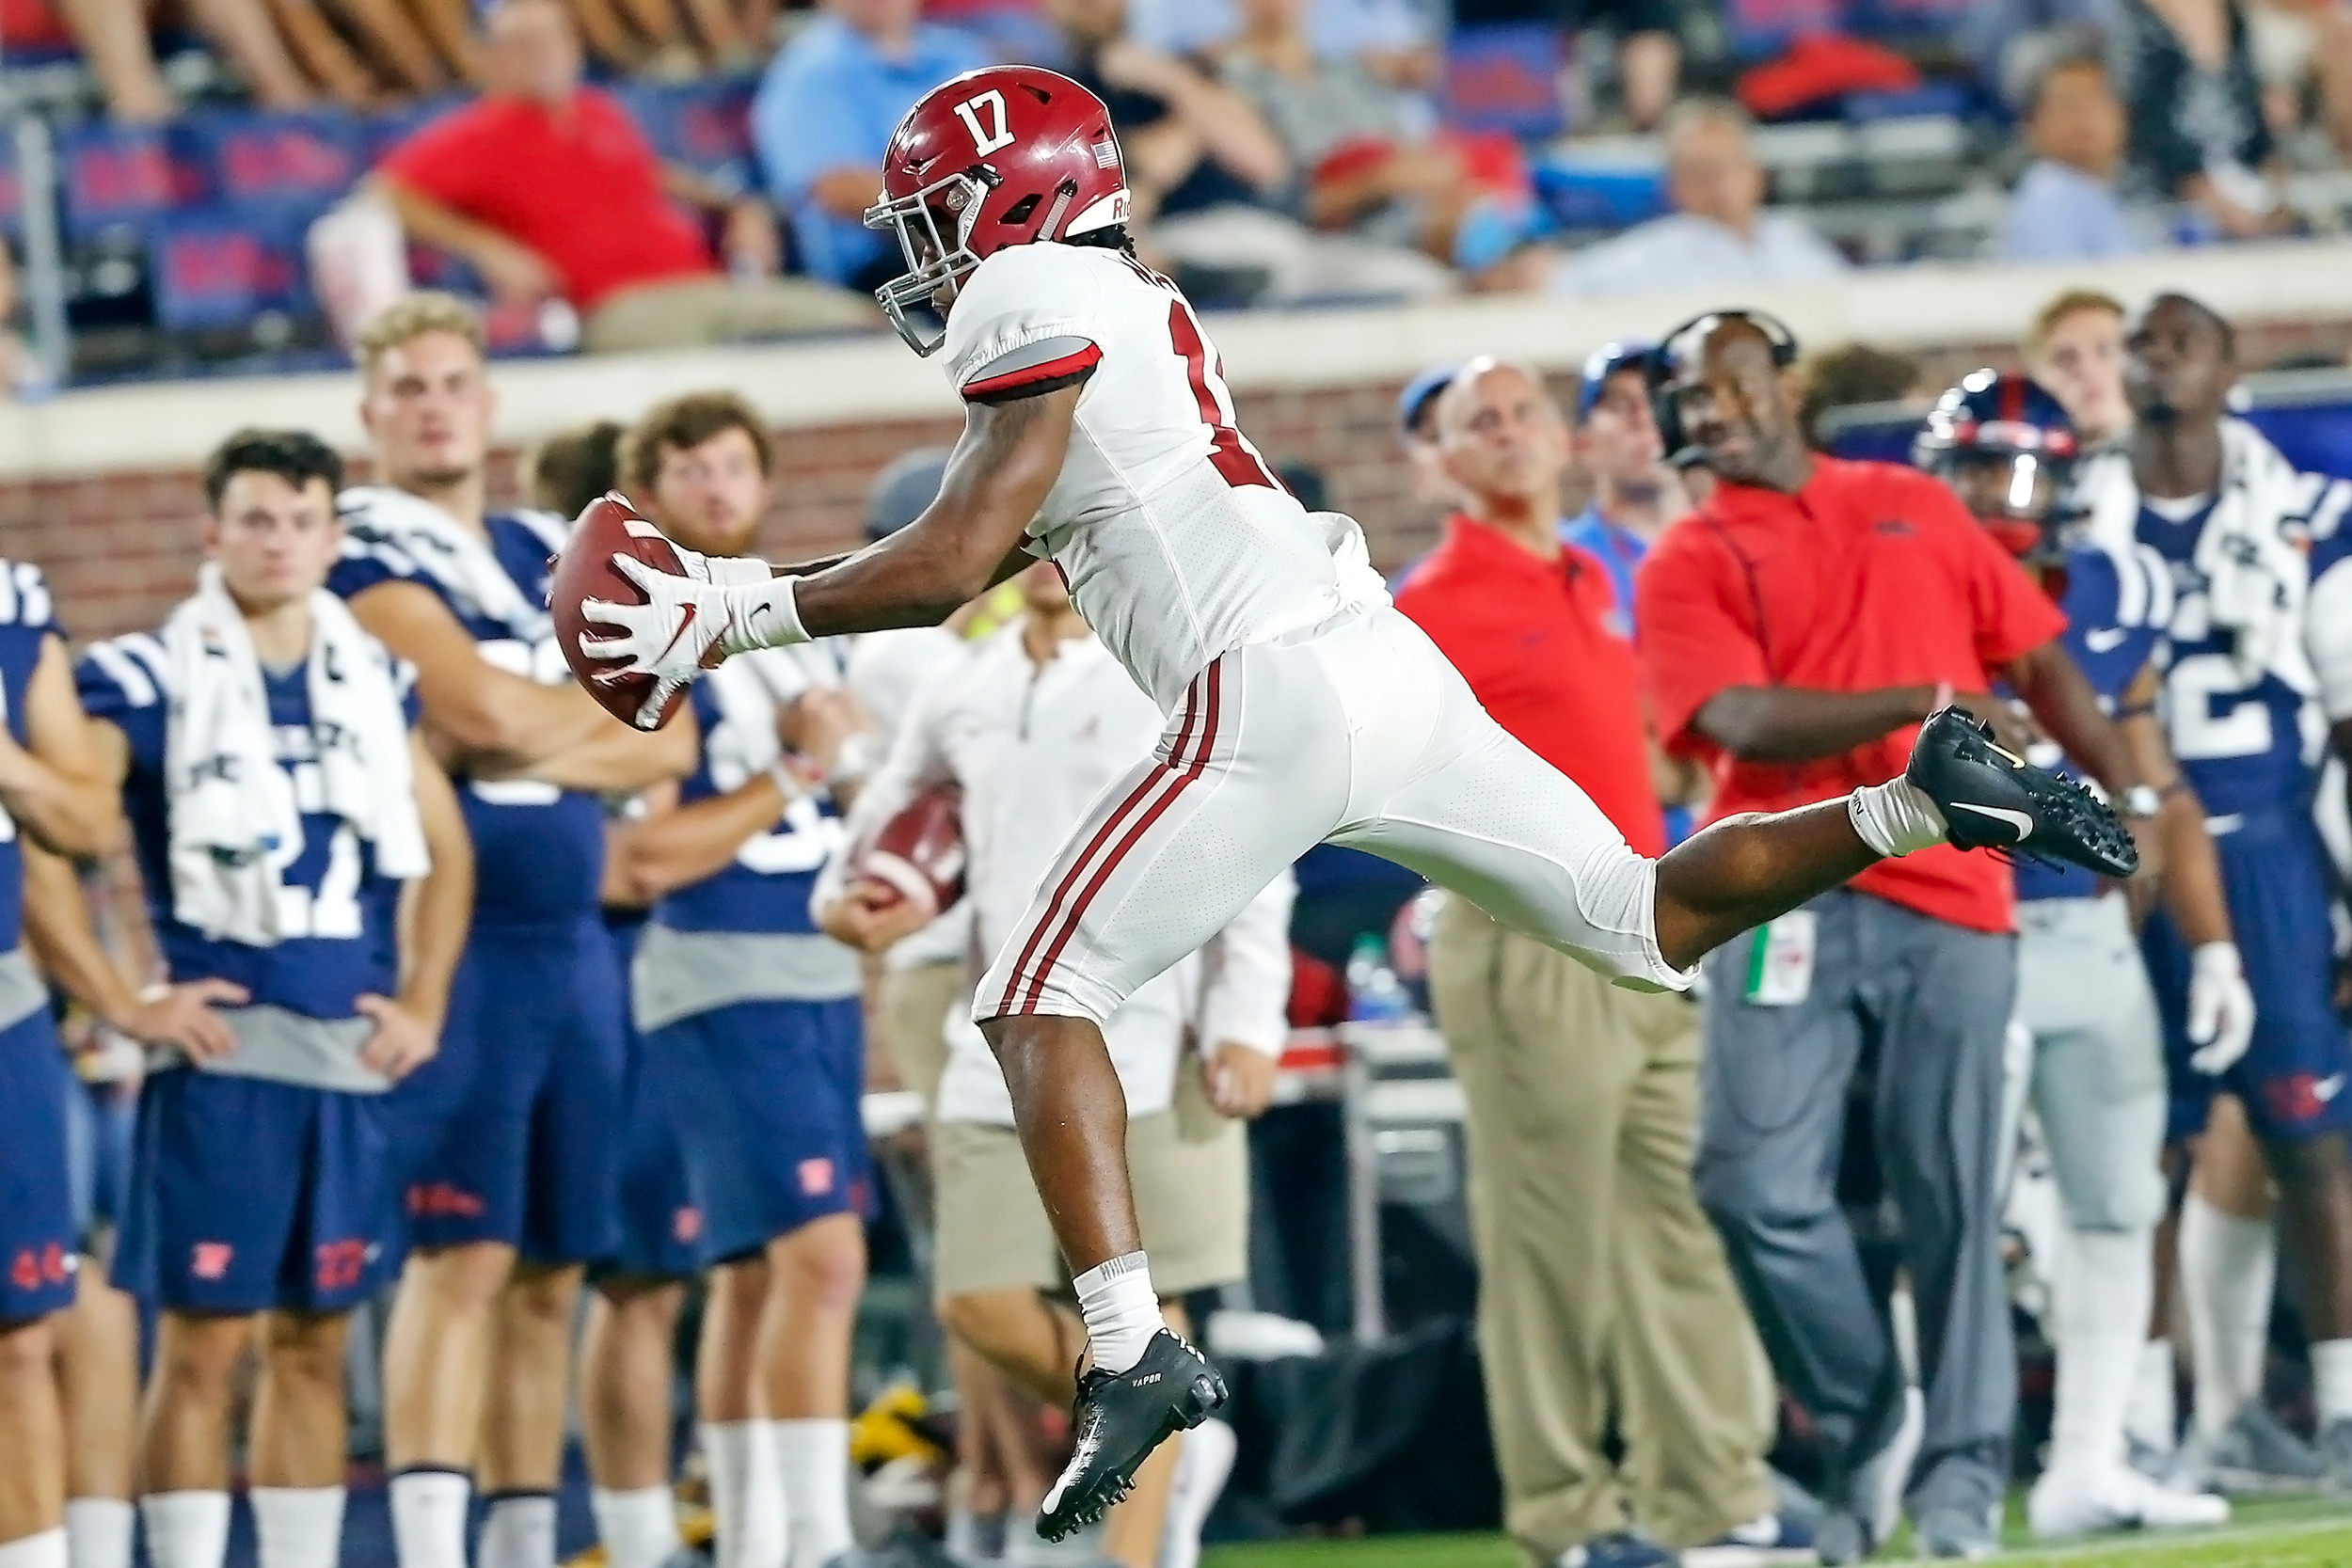 Alabama Crimson Tide wide receiver Jaylen Waddle (17) makes an acrobatic reception during the game between the University of Alabama and Ole Miss at Vaught-Hemingway Stadium. Jason Clark / Daily Mountain Eagle